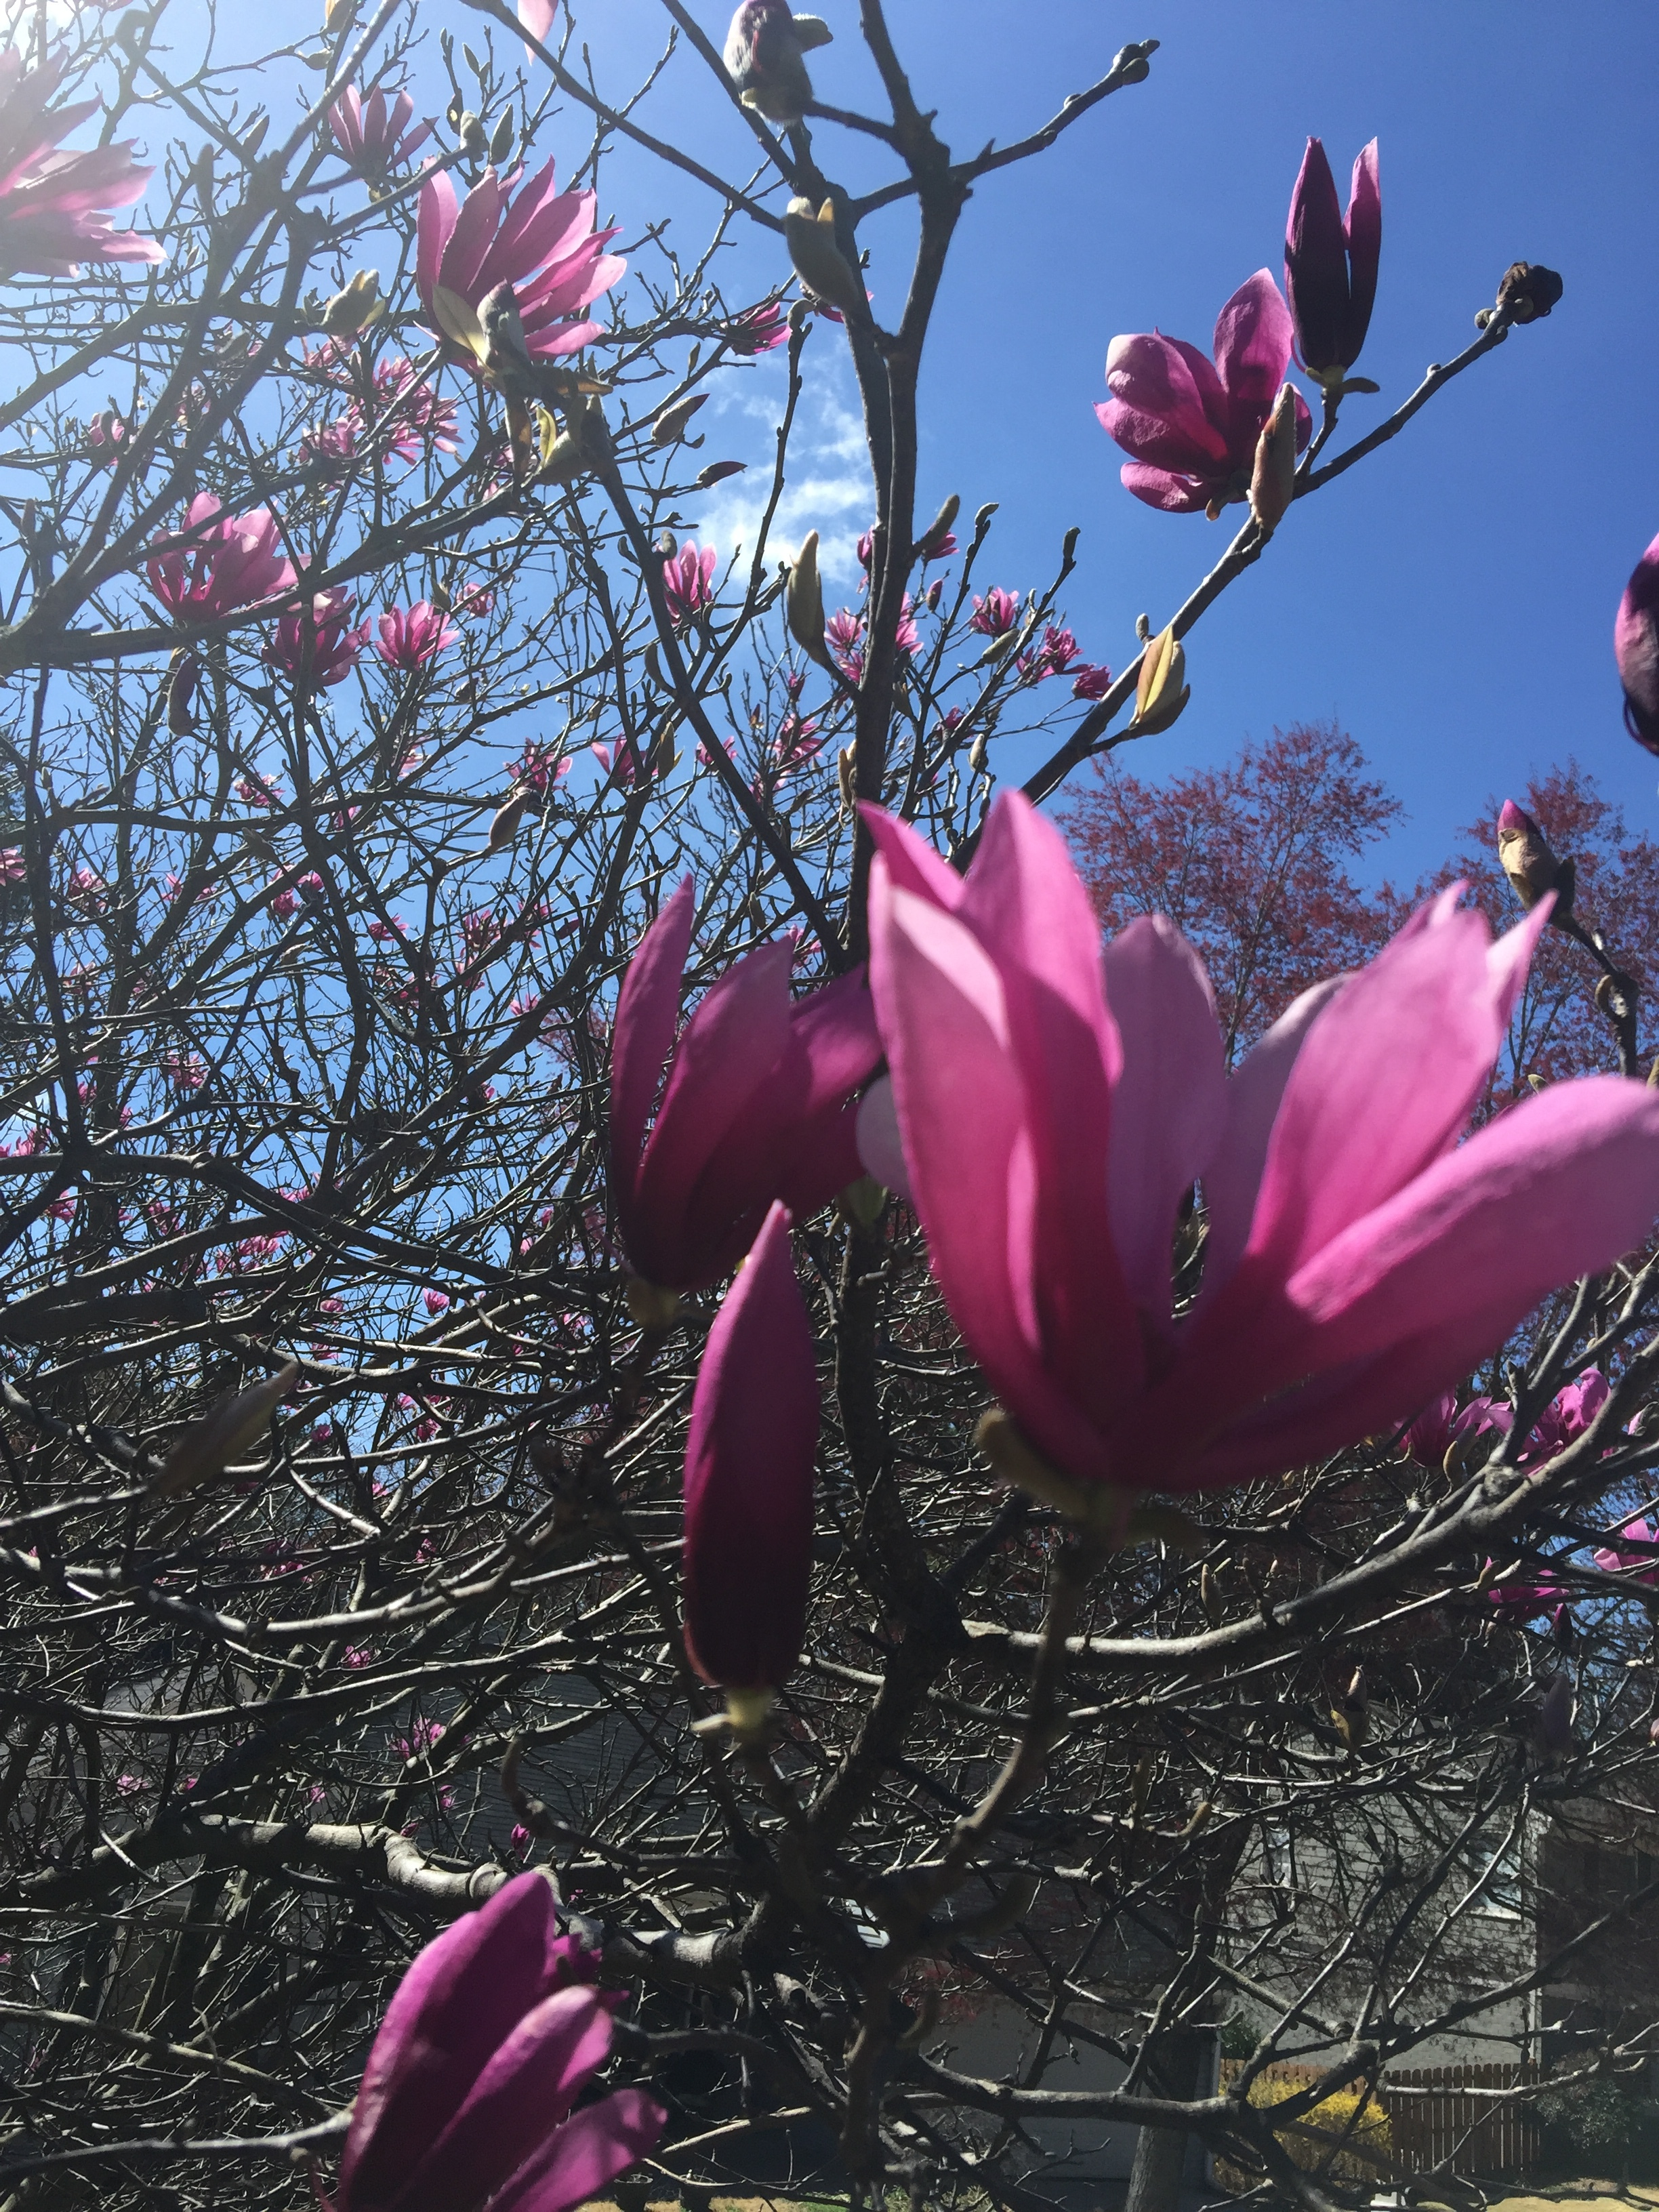 There is nothing like spring in the south eastern U.S.Saucer Magnolias open up their blooms to herald in the coming dawn of warmth, color, pollen, and all things brand new.